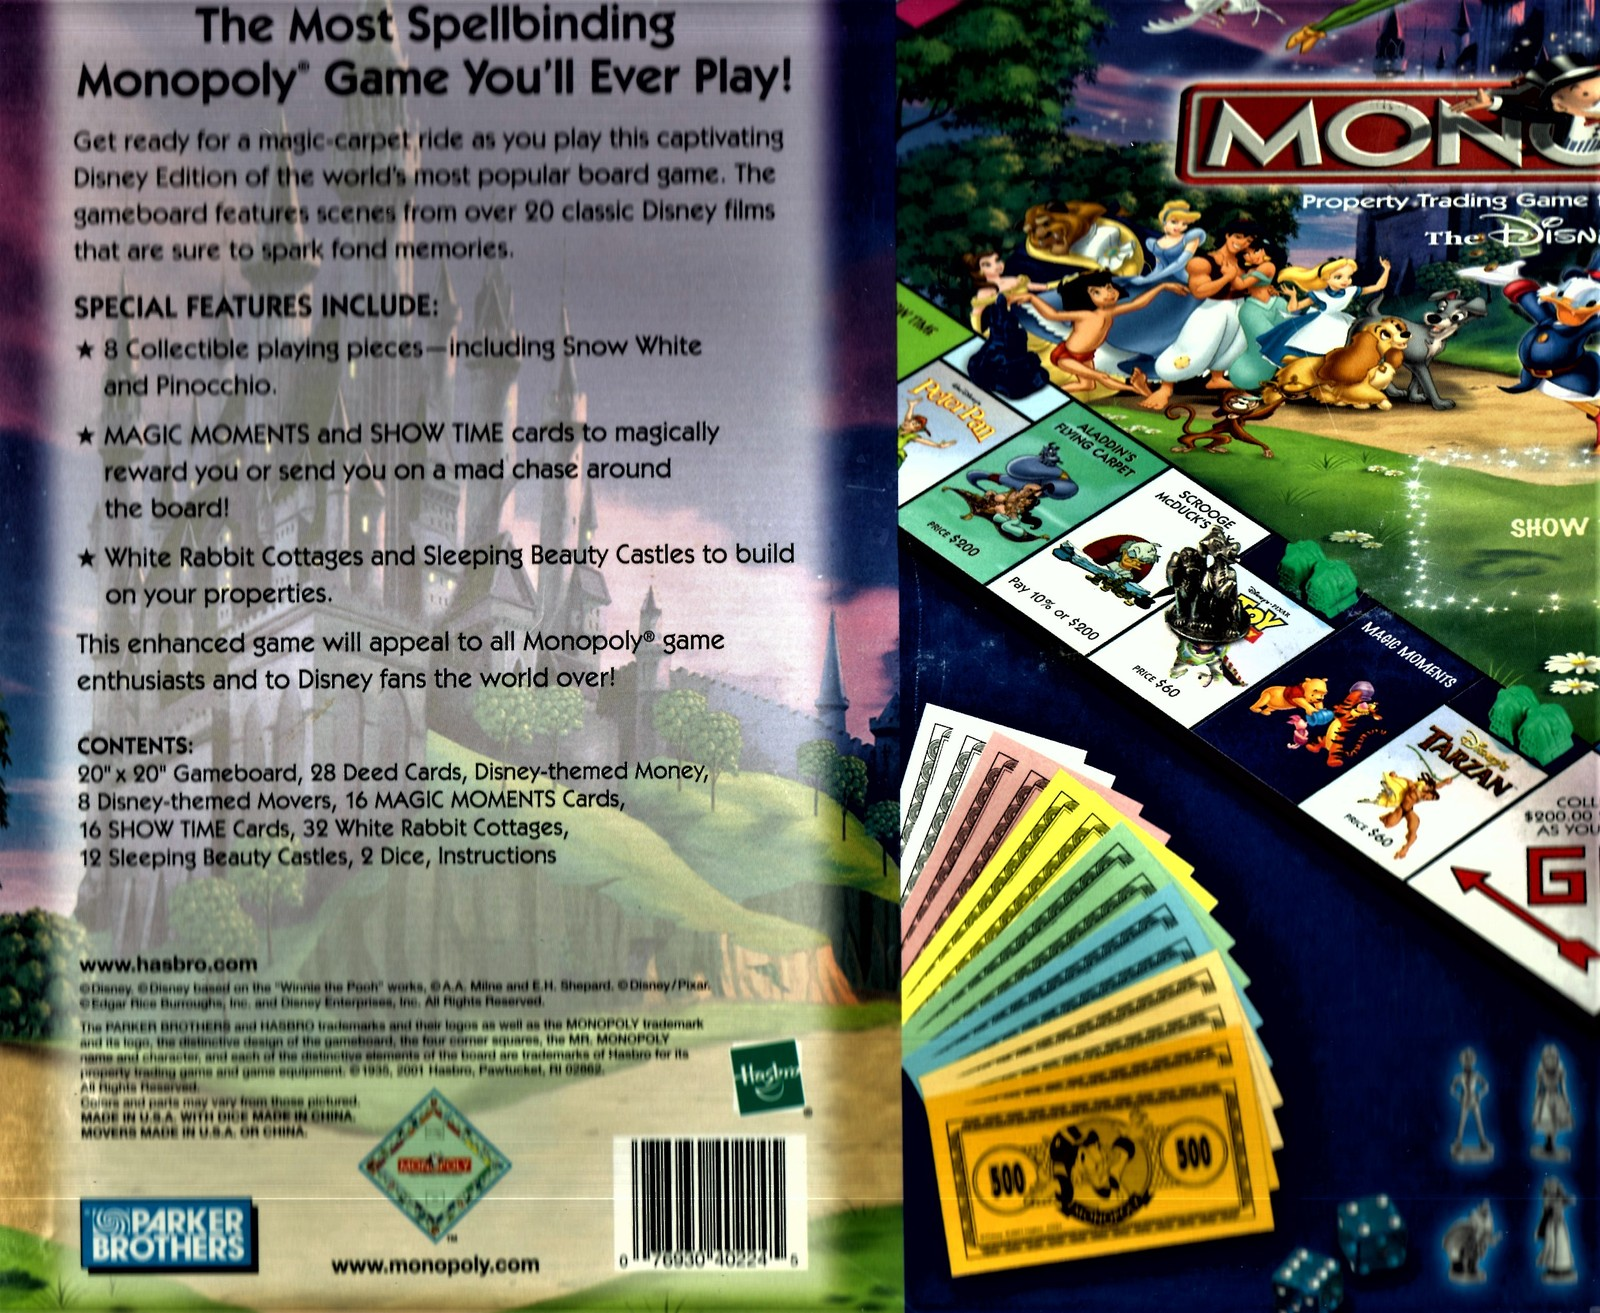 Monopoly -The Disney Edition - Property Trading Game From Parker Brothers -2001 image 2